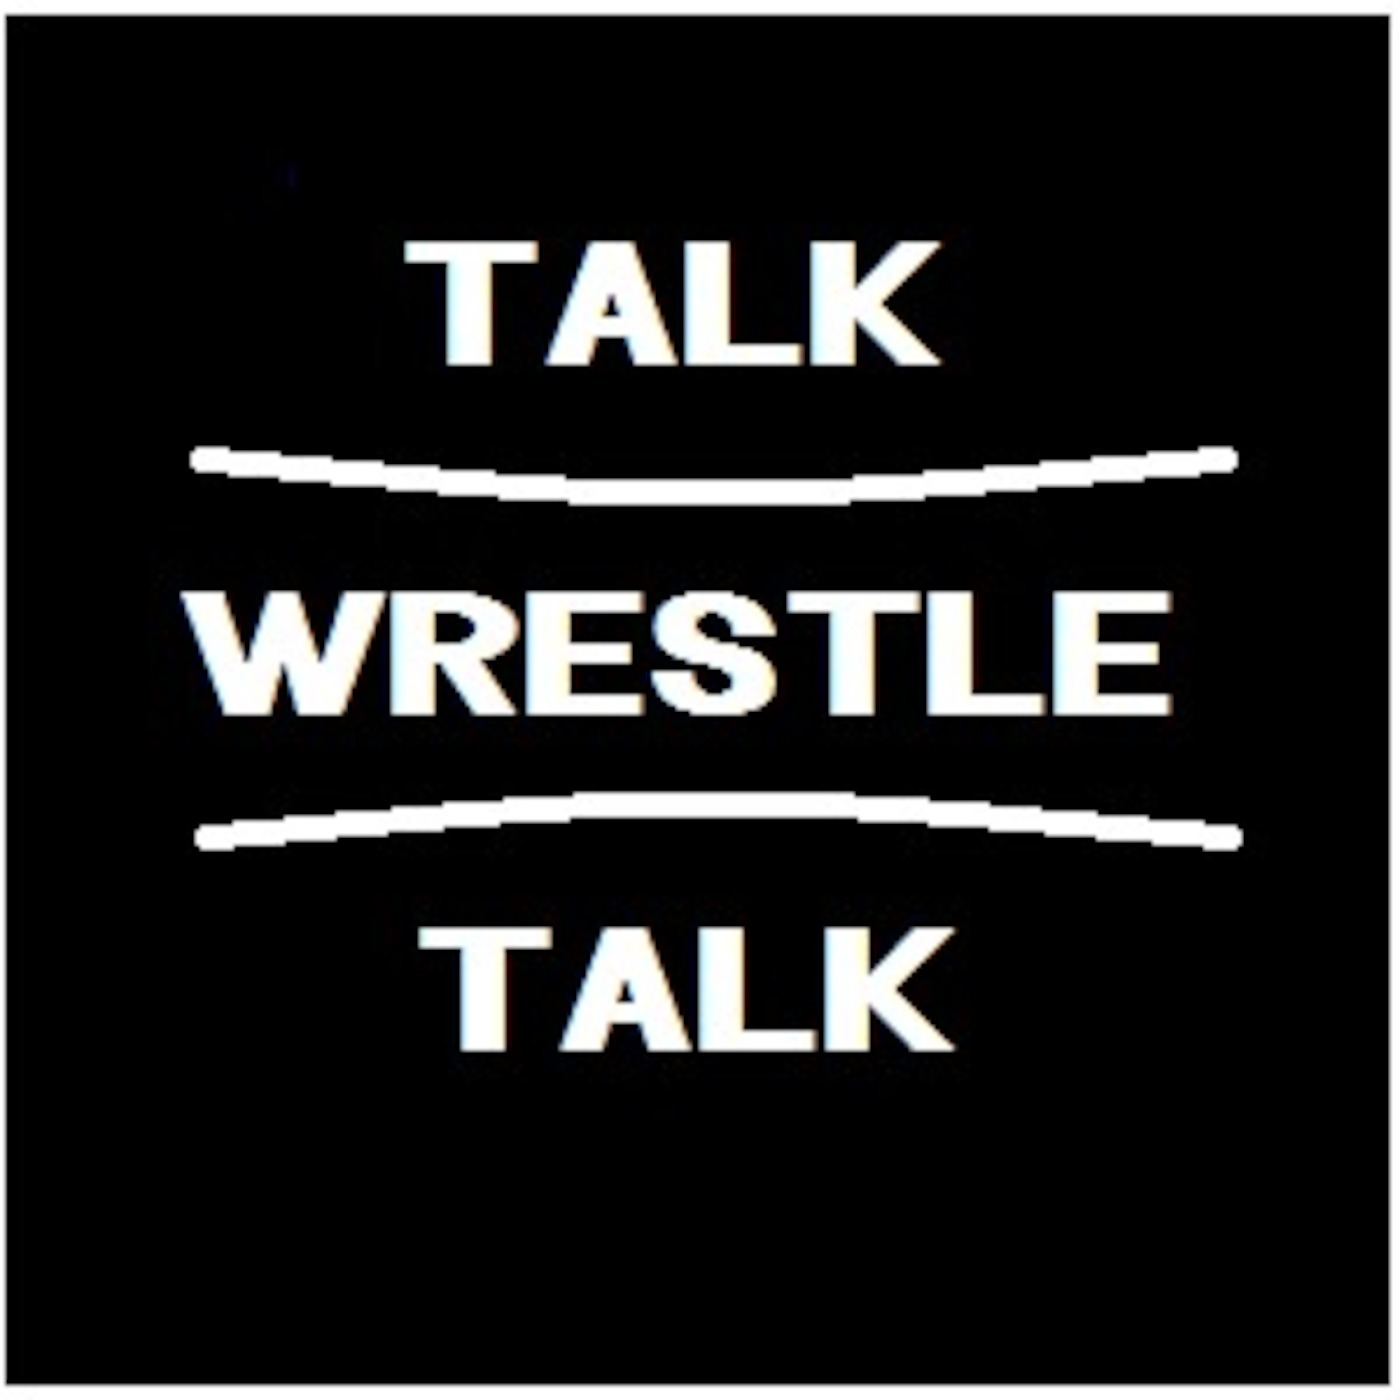 Talk Wrestle Talk